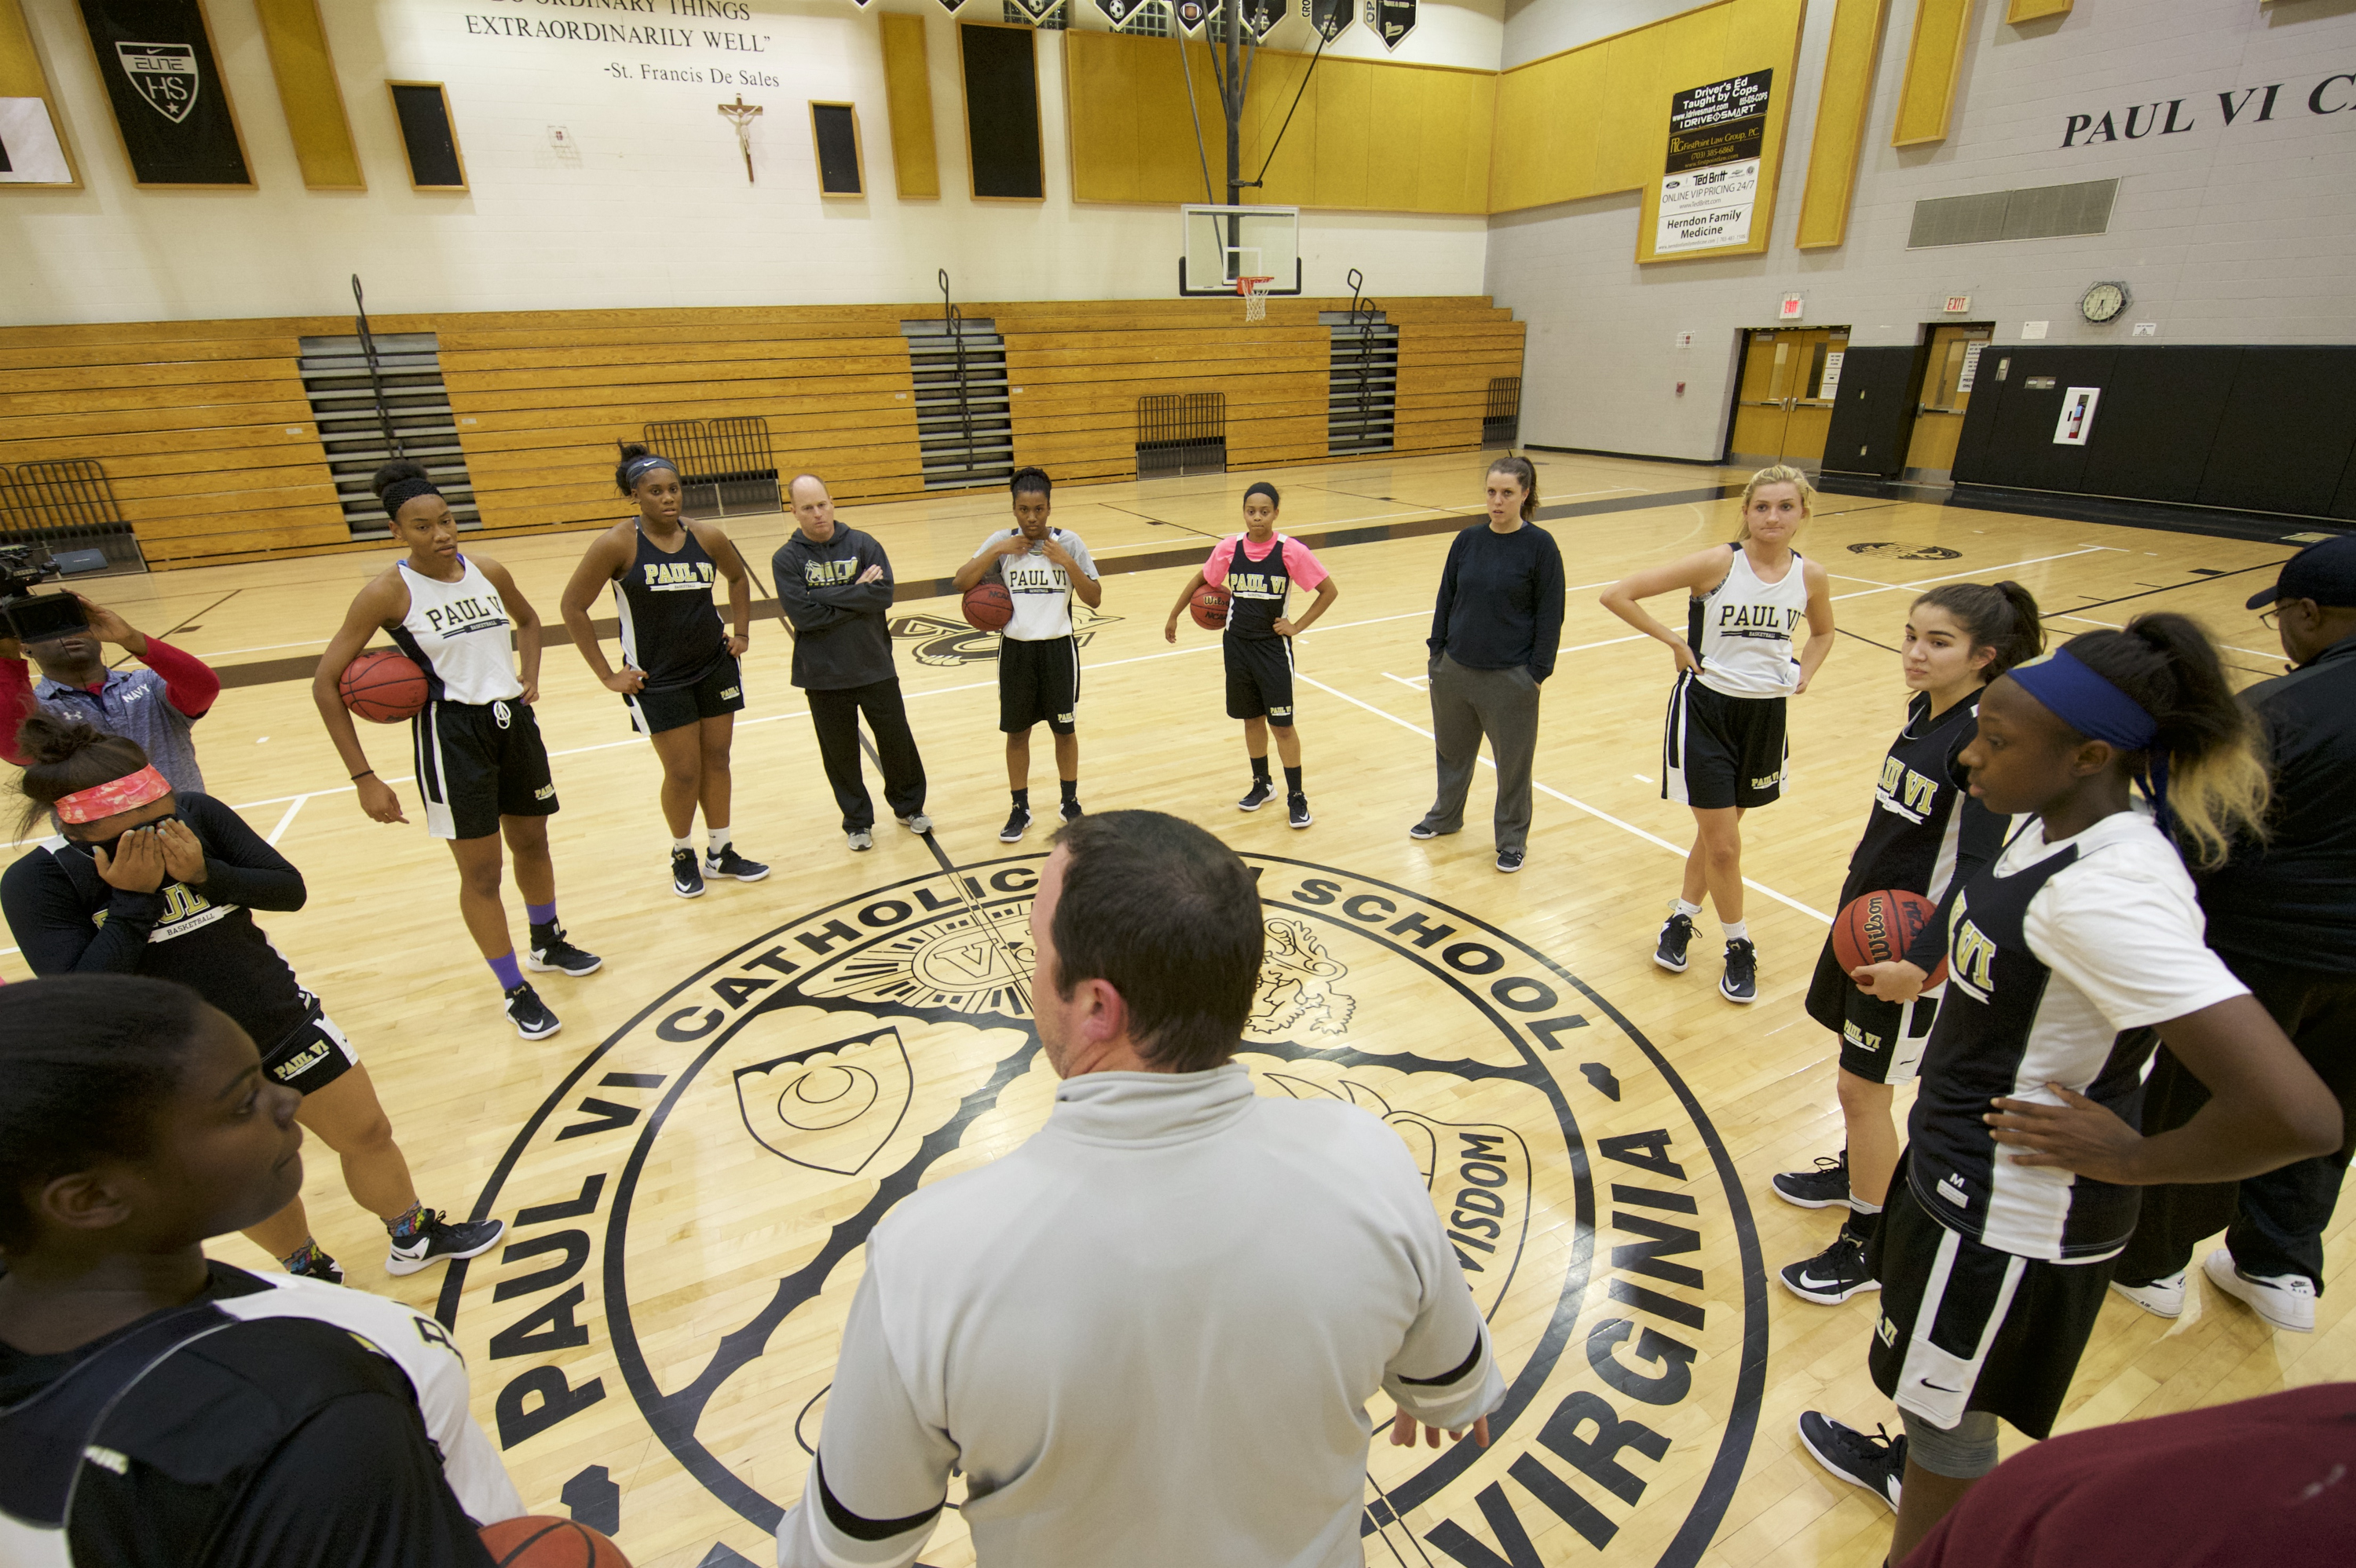 11/14/16 5:32:23 PM -- Fairfax, VA, U.S.A -- Paul VI Catholic High School in Fairfax, Virginia will be one of our top ranked girls basketball teams. Head coach Scot Allen bring gathers the girls basketball team together before practice. -- Photo by Rafael Suanes/USA TODAY Sports Images, Gannett ORG XMIT: US 135760 Pual VI 11/14/2016 [Via MerlinFTP Drop]